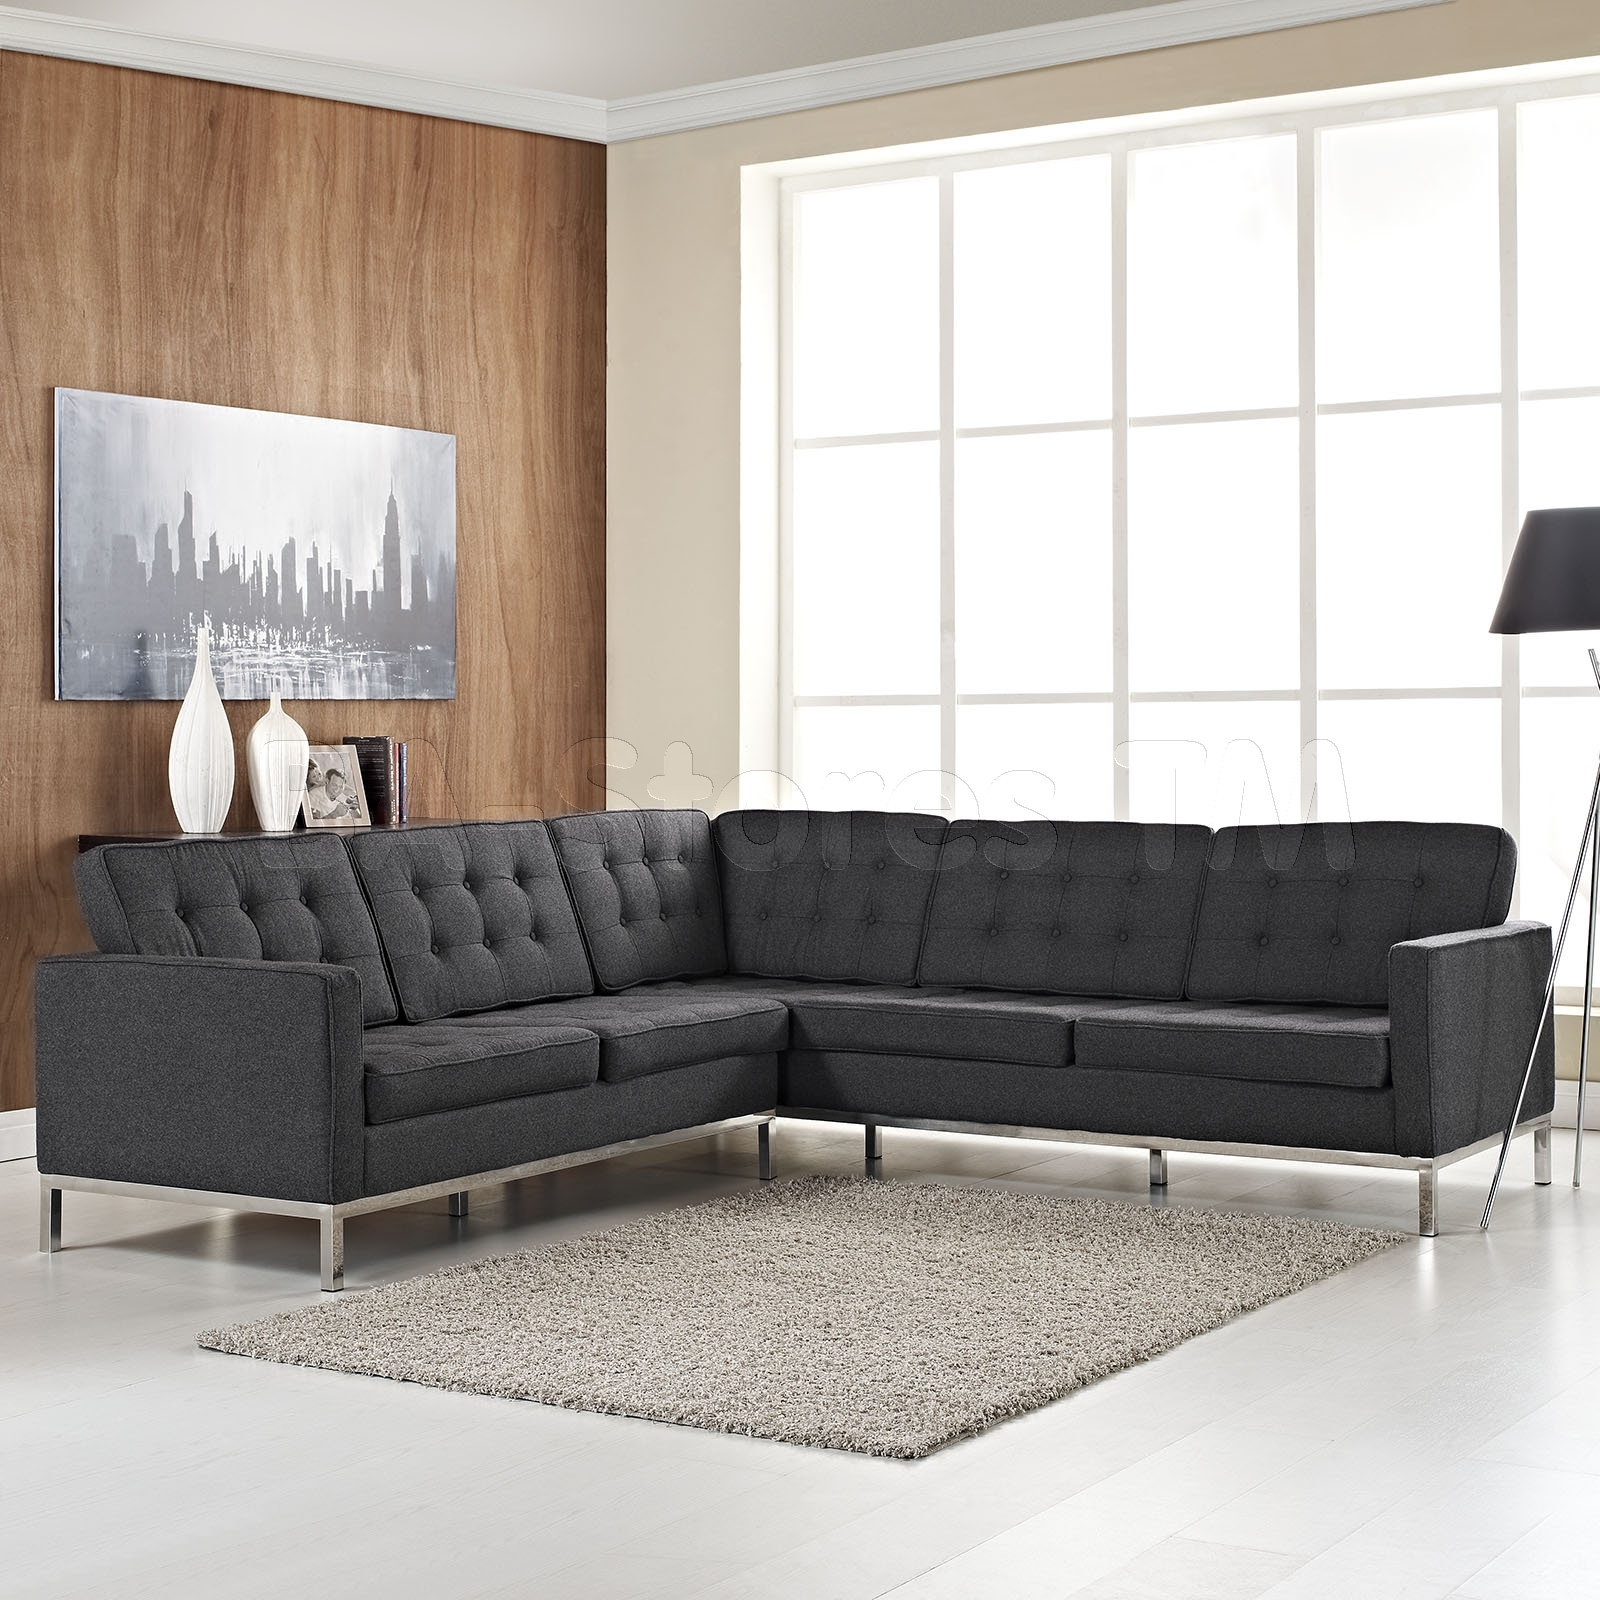 Furniture : 495017 495019 Cyw Kendall Teal Sofa Vlvt Swatch Skyline Pertaining To Oakville Sectional Sofas (View 6 of 10)